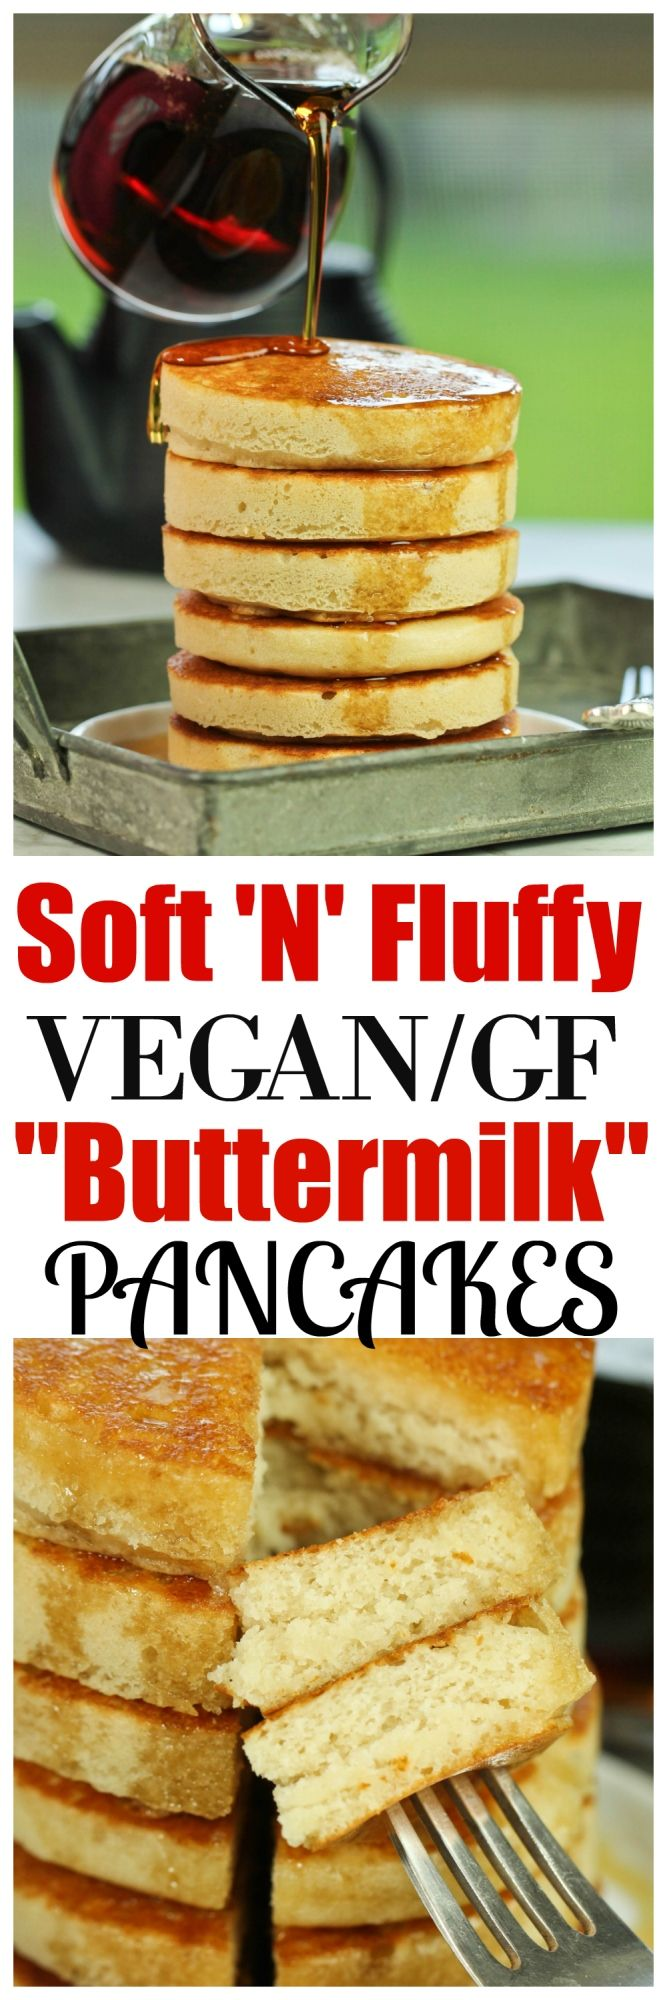 Unbelievably Soft 'N' Fluffy Gluten-Free Buttermilk Pancakes that are so impressive, nobody will believe they are vegan, gluten-free or made without any butter! Just 8 ingredients is all you need and throw everything into one bowl for easy prep.